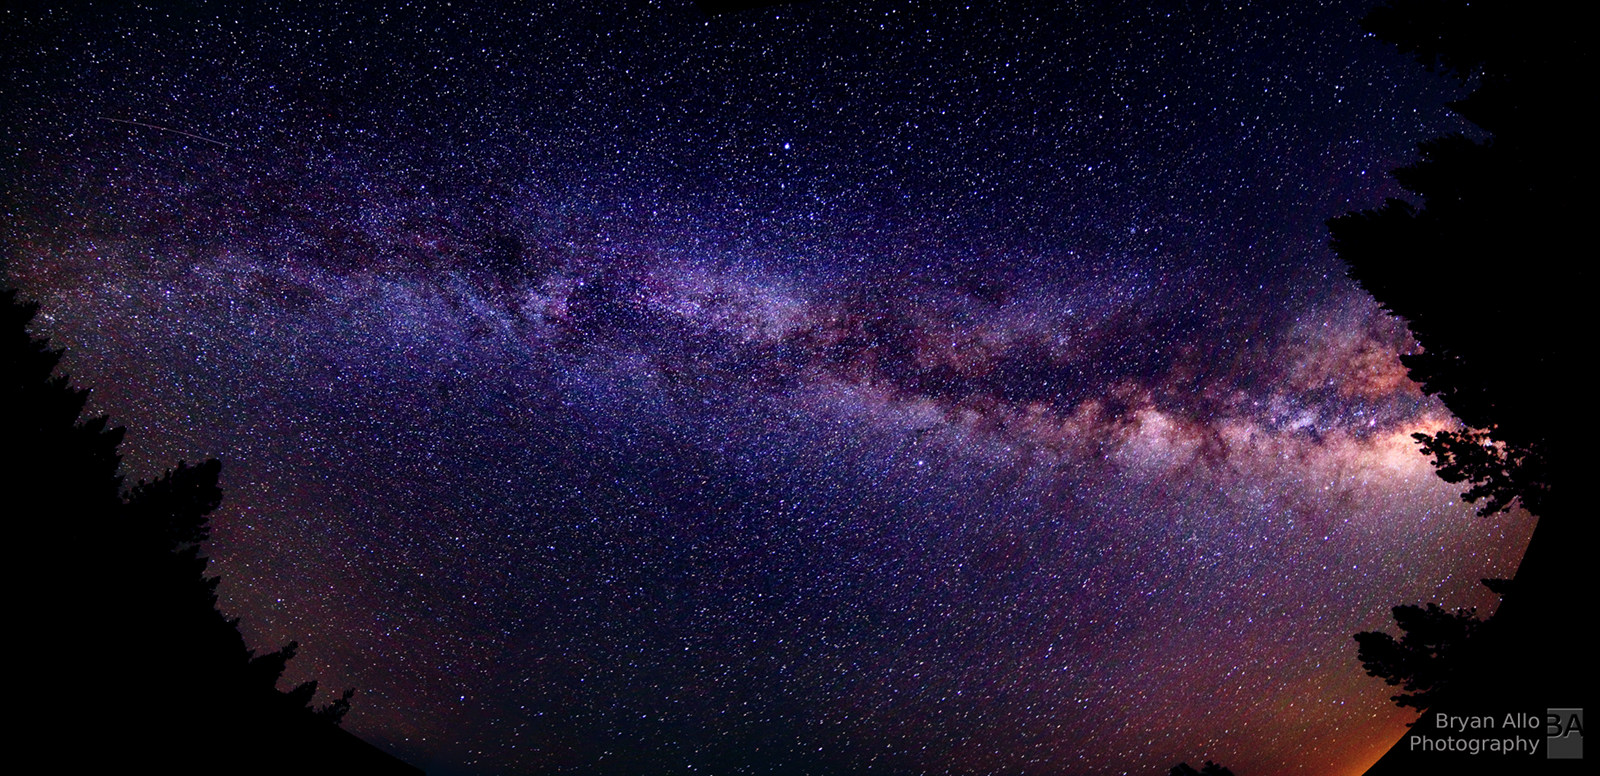 essay milky way galaxy Milky way term paper while the free essays can give you inspiration for writing, they cannot be used 'as is' because they will not meet your assignment's requirements.